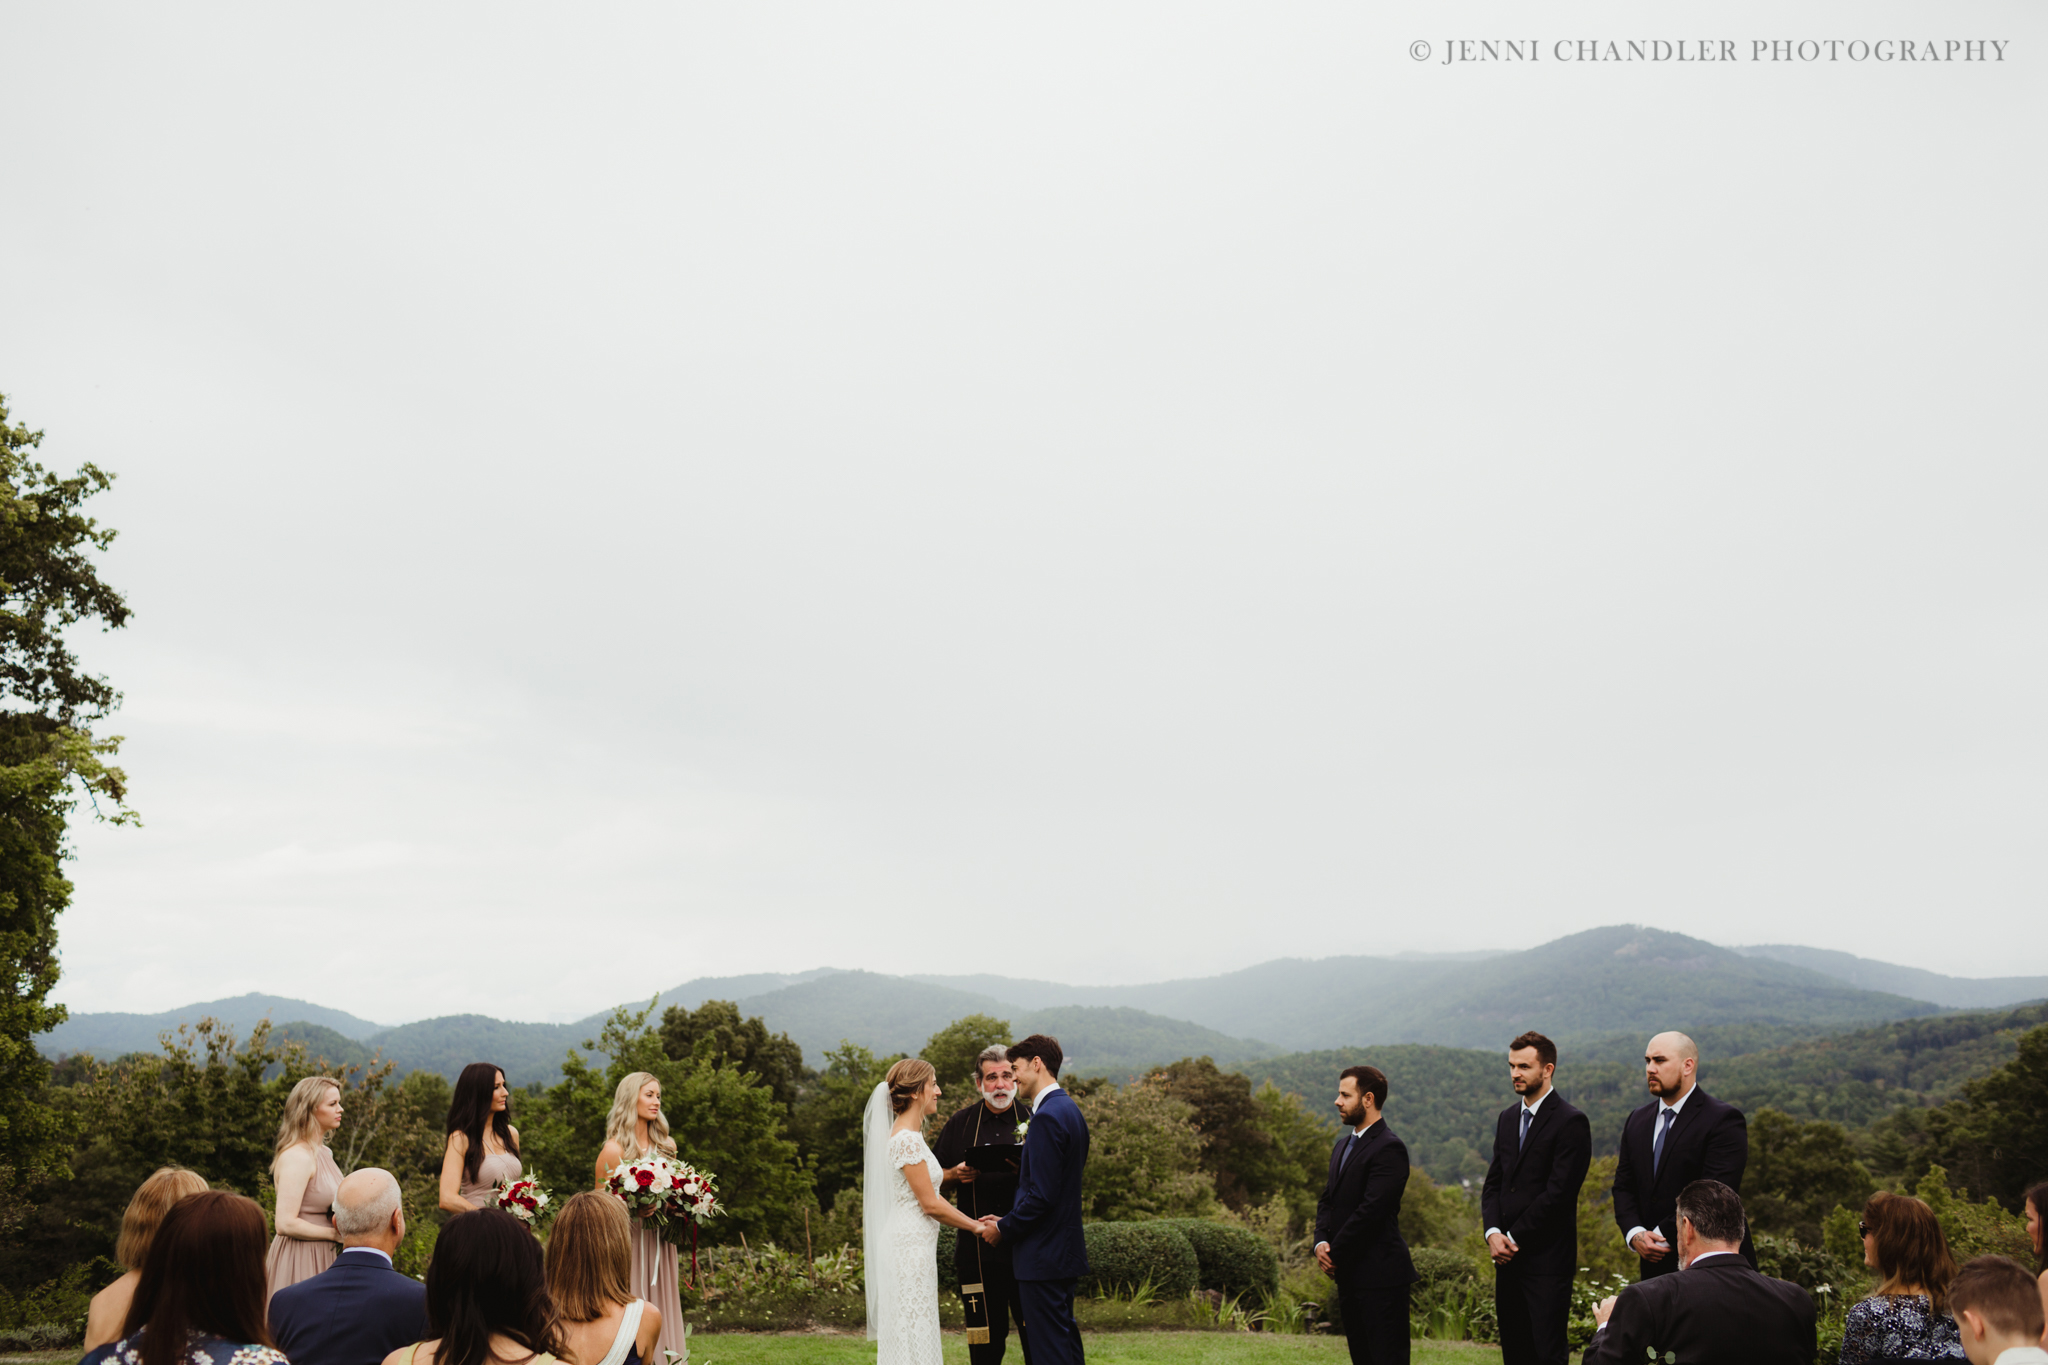 trillium links, trillium links and lakes, trillium wedding, old edwards wedding, old edwards, cashiers wedding, cashiers nc, country club wedding, jenni chandler photography, wnc events, brevard wedding photographer, cashiers wedding photographer, asheville wedding photographer, hendersonville wedding photographer, mills river wedding photographer, western nc wedding photographer, blue ridge mountains wedding photographer, benjamin warner, the blossom jar, anarie, sugar cloud, mountain wedding, mountain bride, intimate wedding, elopement, jenni chandler, small wedding, southern bride, nc bride and groom, nc mountain wedding, blue ridge wedding, mountain backdrop